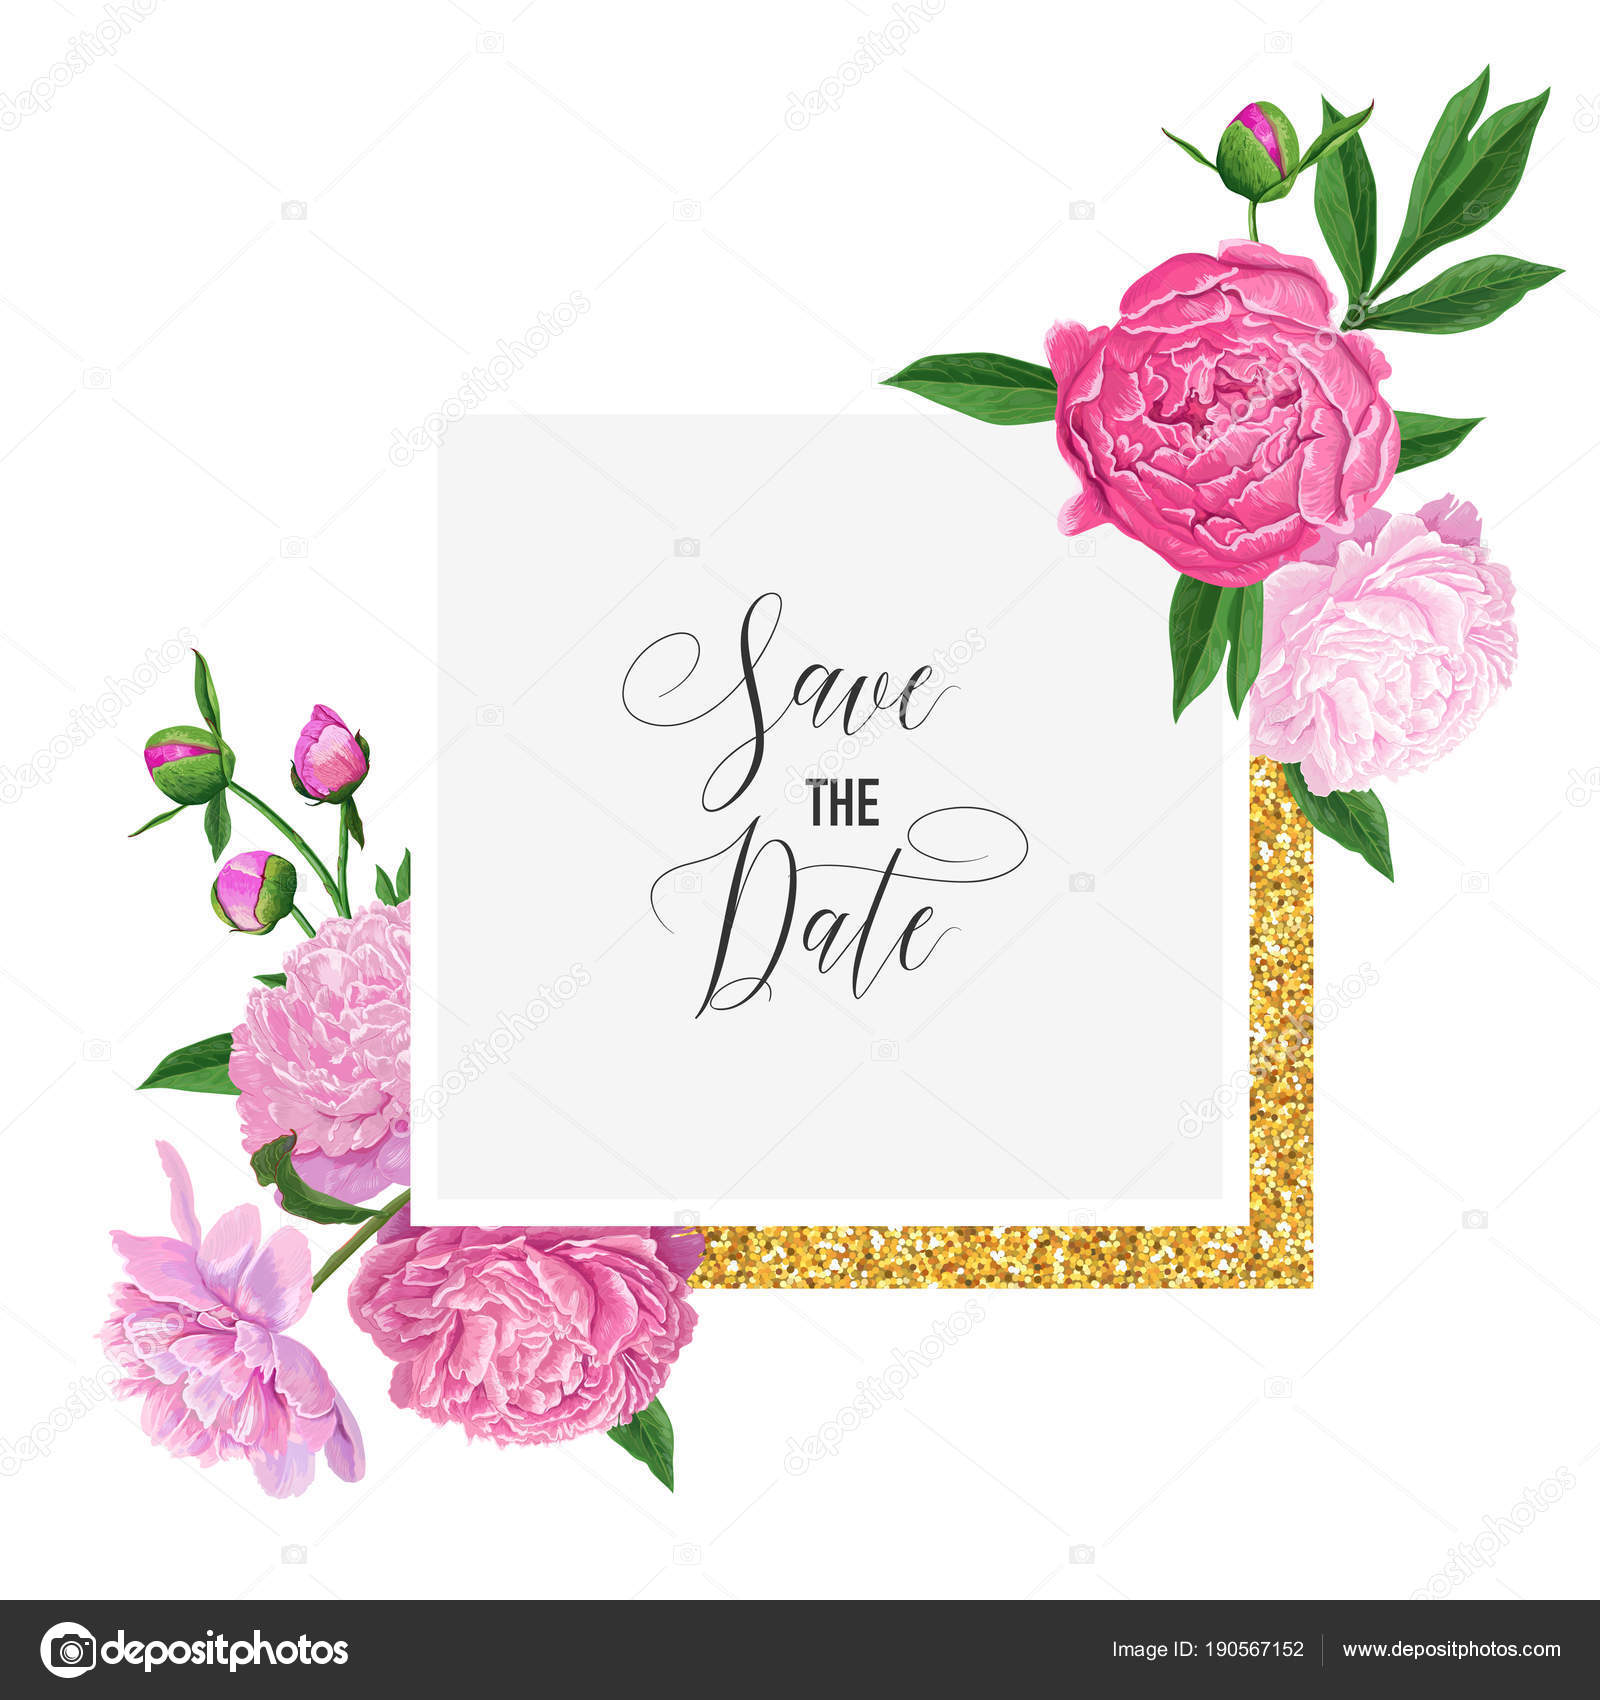 Floral wedding invitation template save the date card with blooming floral wedding invitation template save the date card with blooming pink peony flowers and golden frame romantic botanical design for ceremony decoration stopboris Image collections